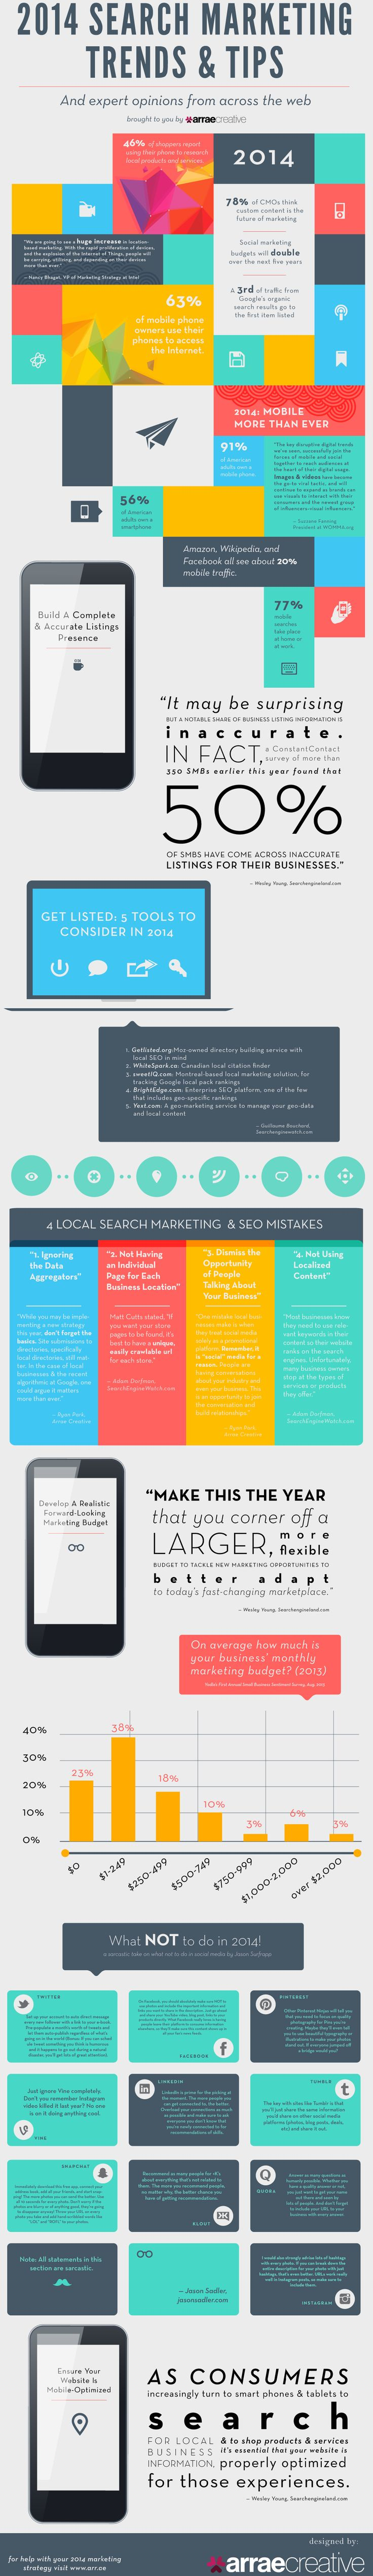 2014 Online #Marketing #Trends And Tips  #infographic